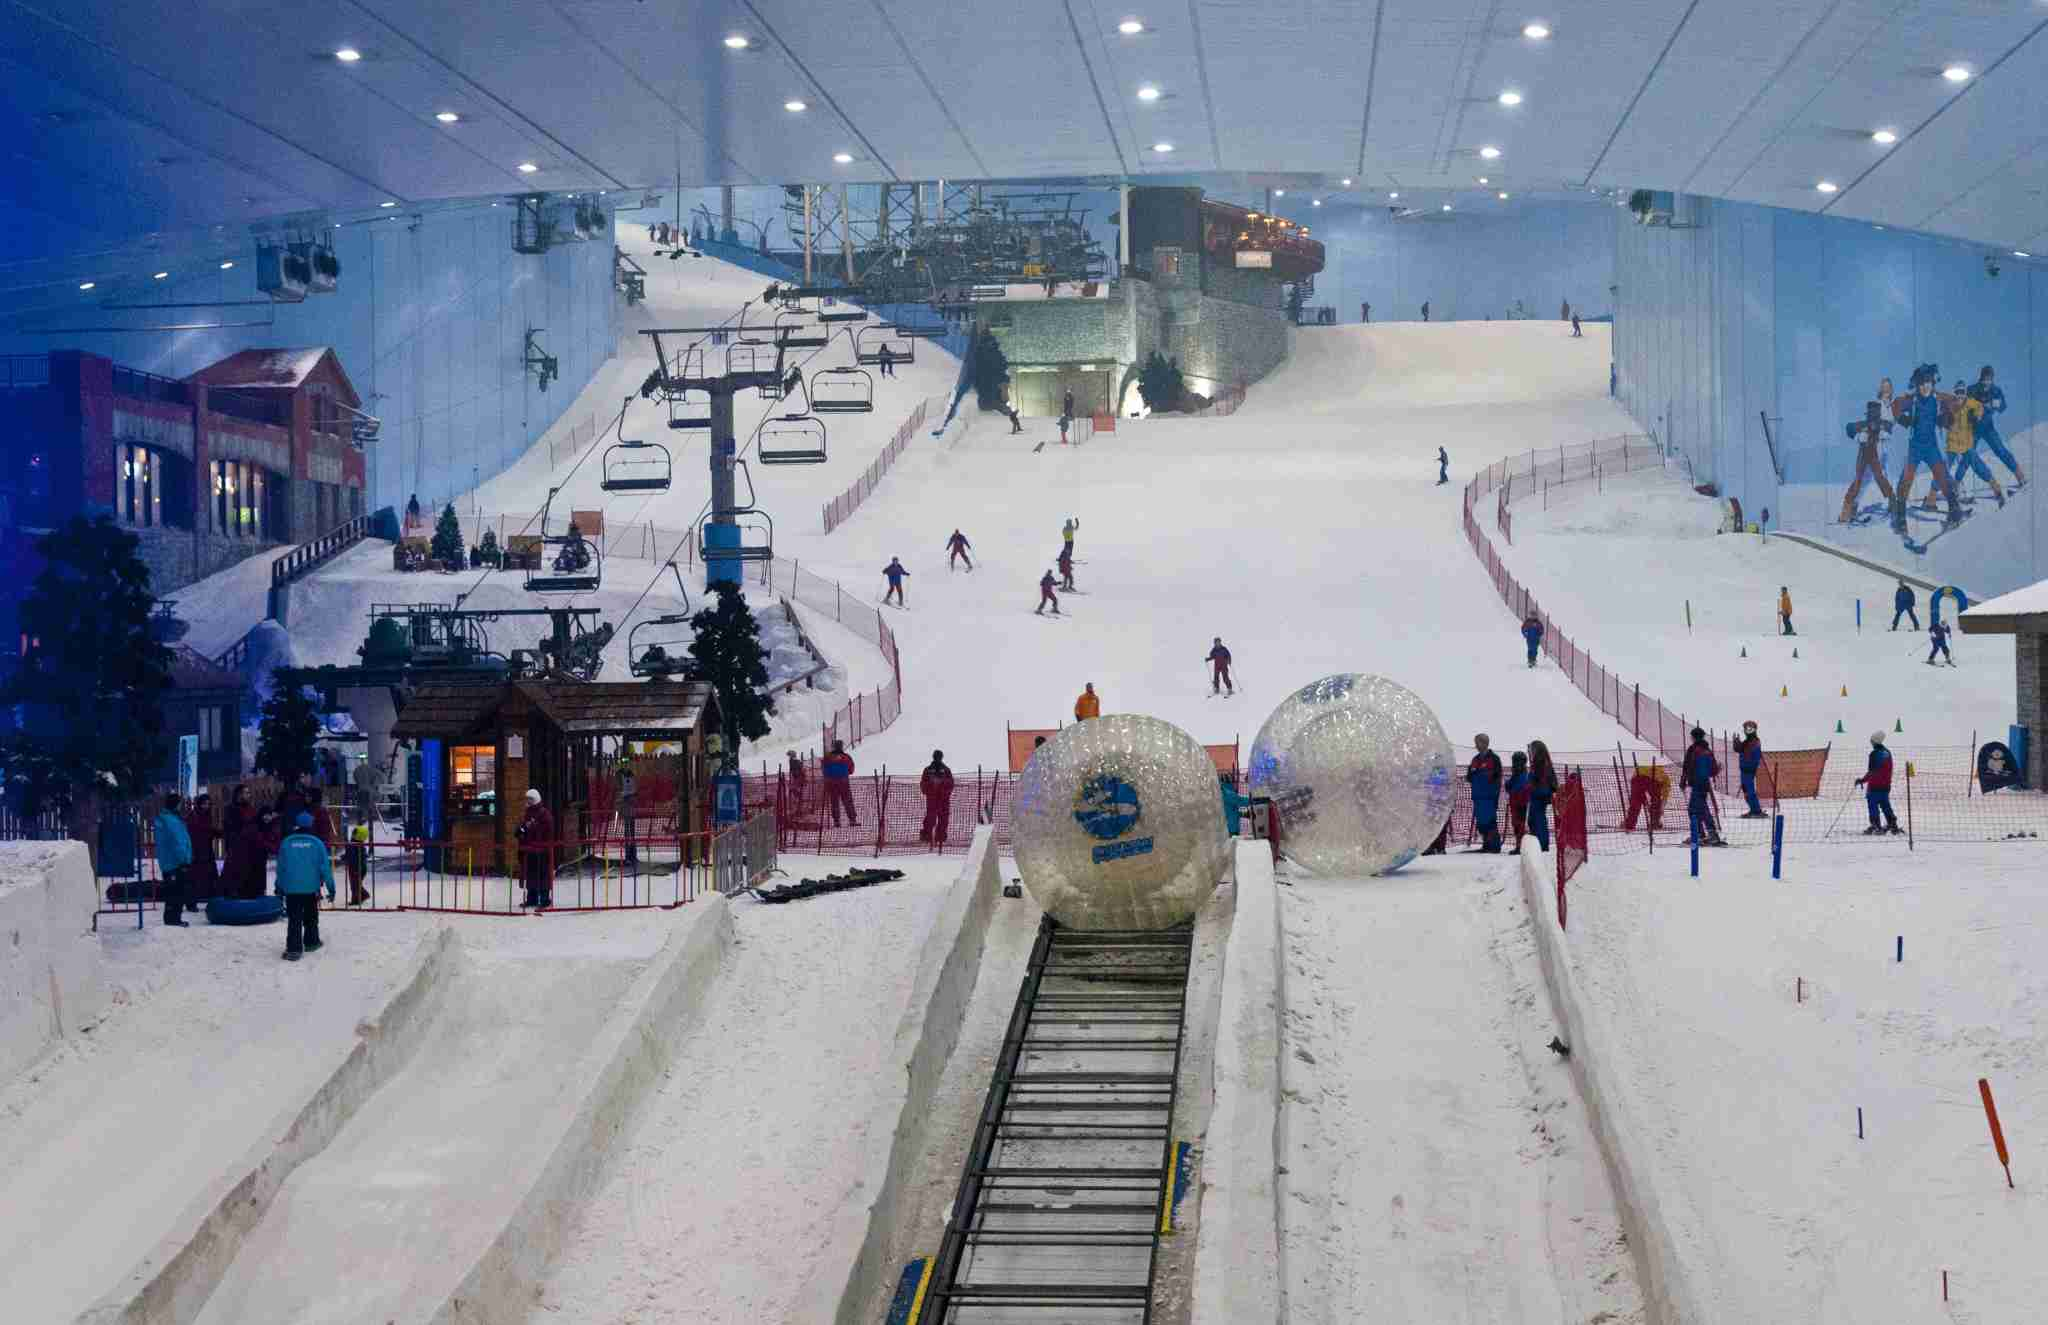 Only indoor ski slope resort in the world at the Mall of the Emirates in Dubai in the UAE in thriving U.A.E. United Arab Emirates. (Photo by: Education Images/UIG via Getty Images)